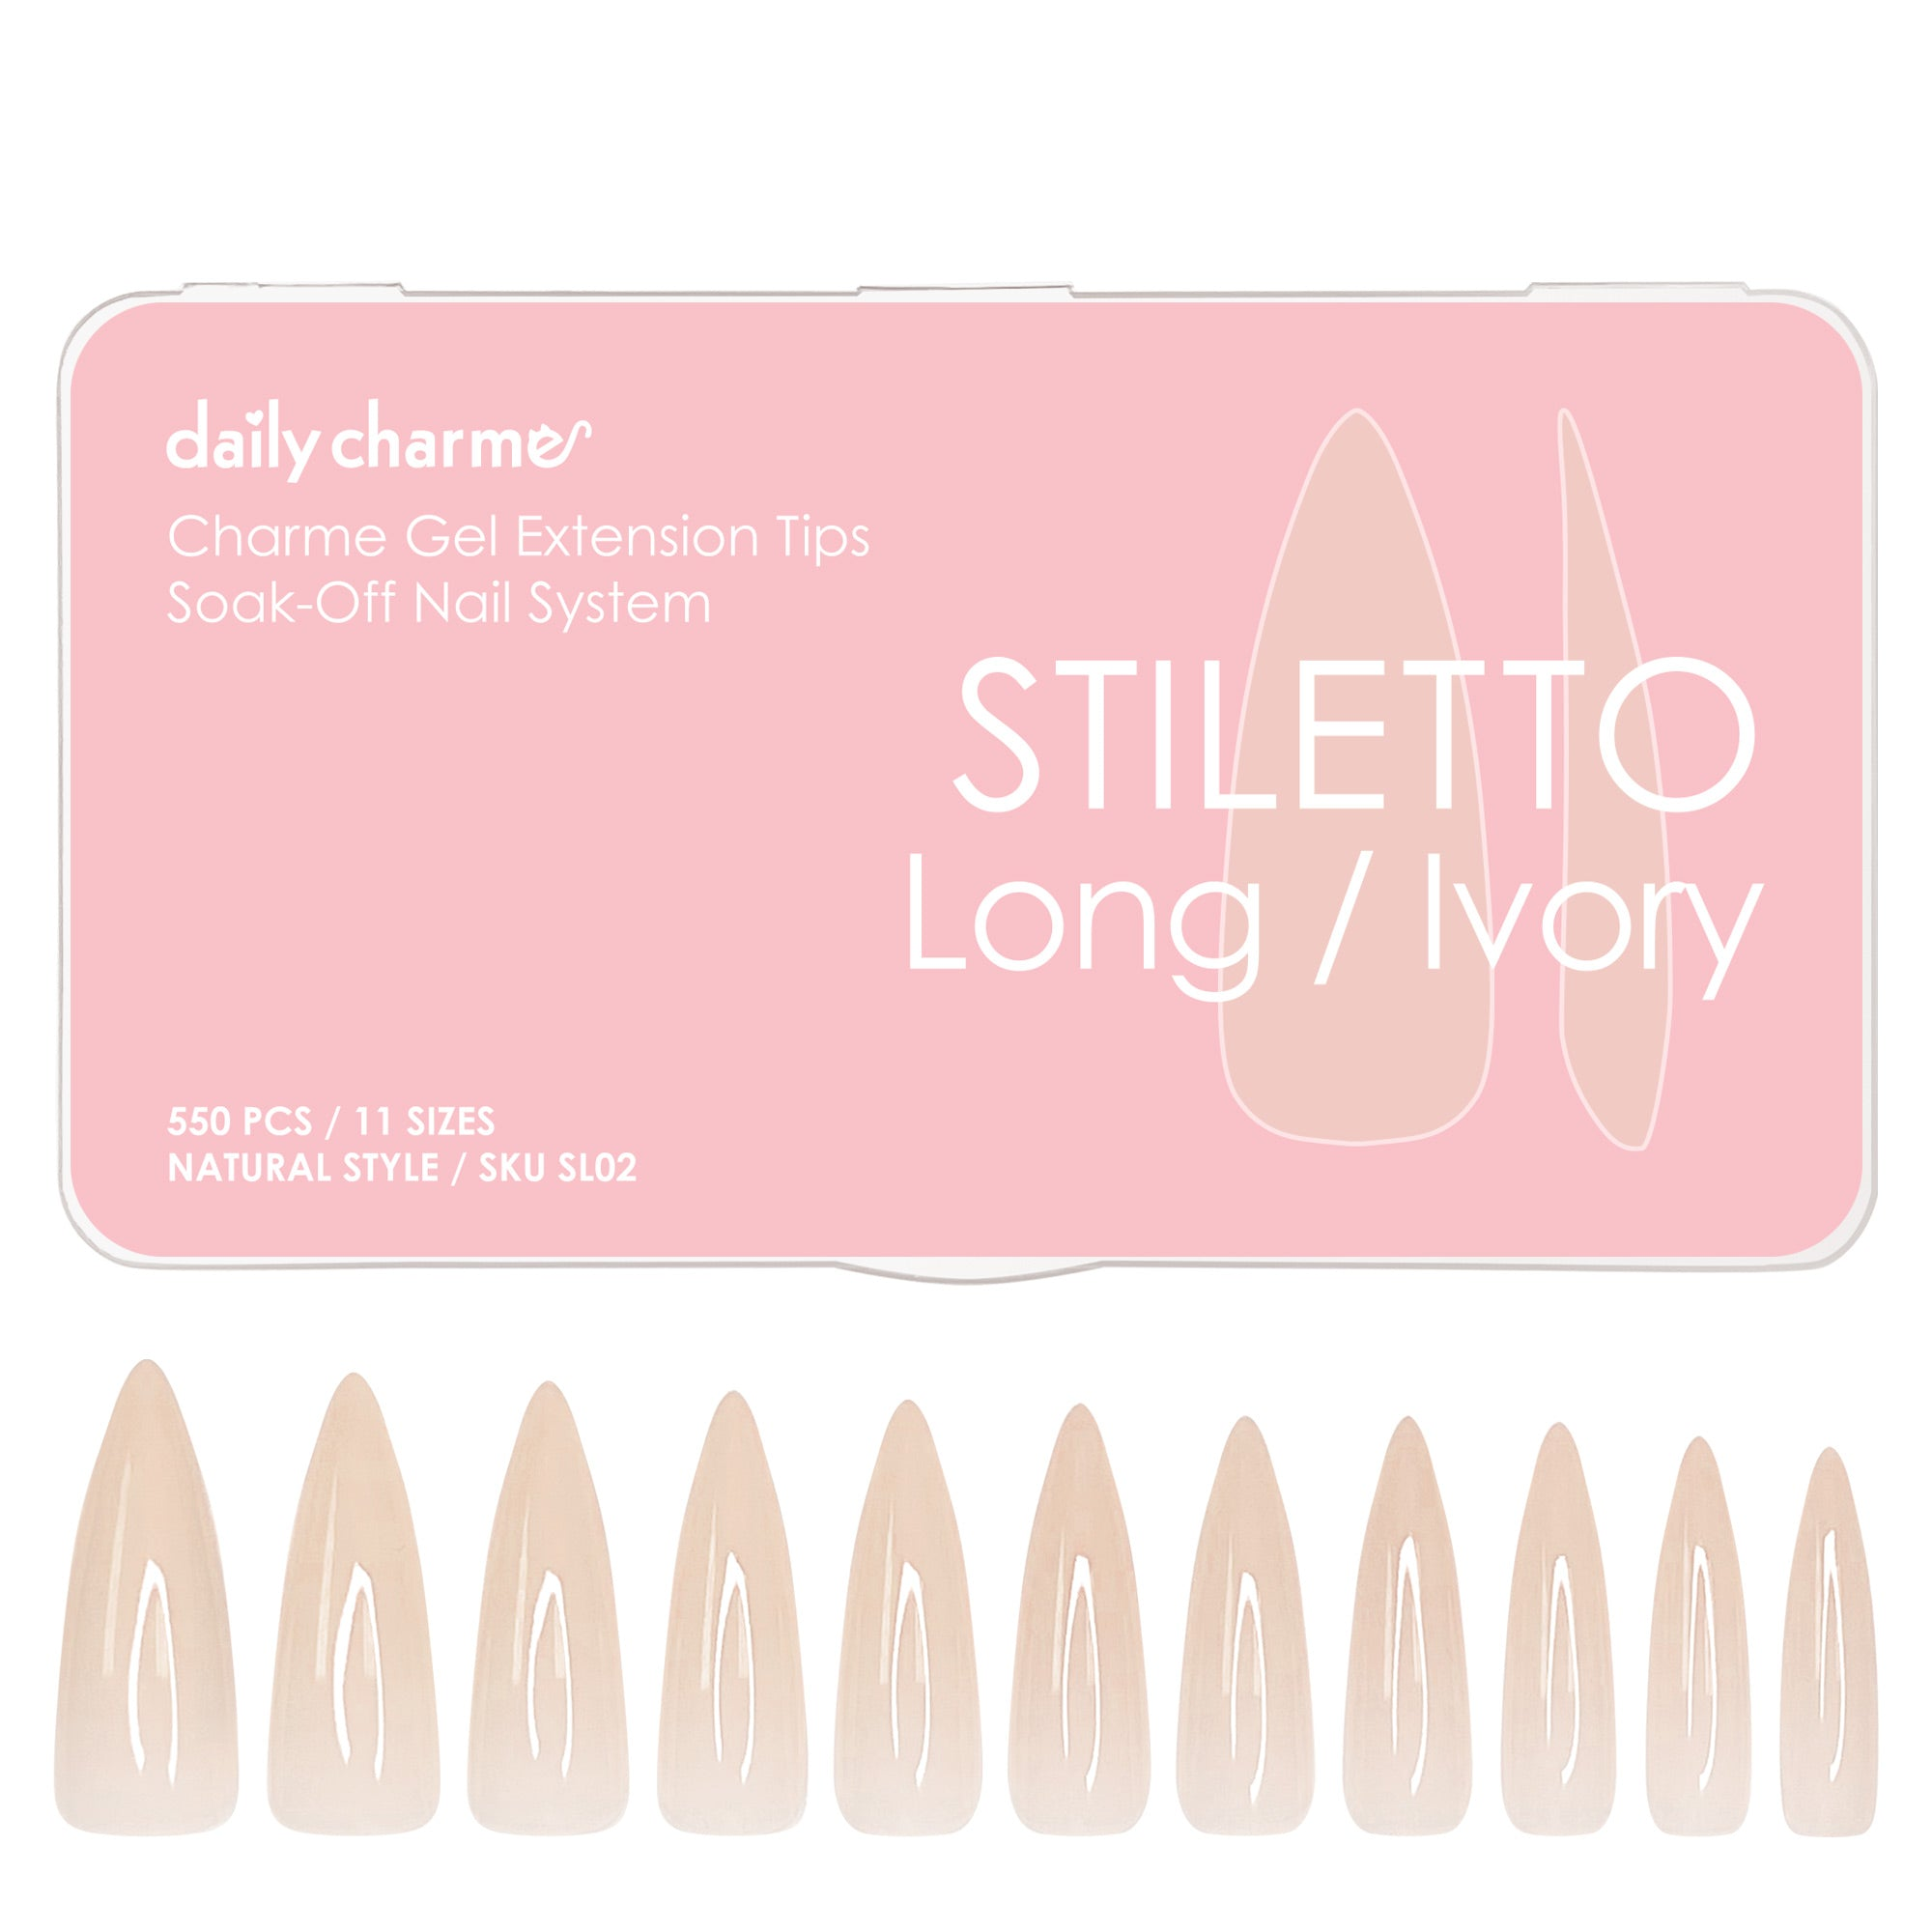 Charme Gel Extension Tips / Stiletto / Long / Ivory Beige Nail Chips